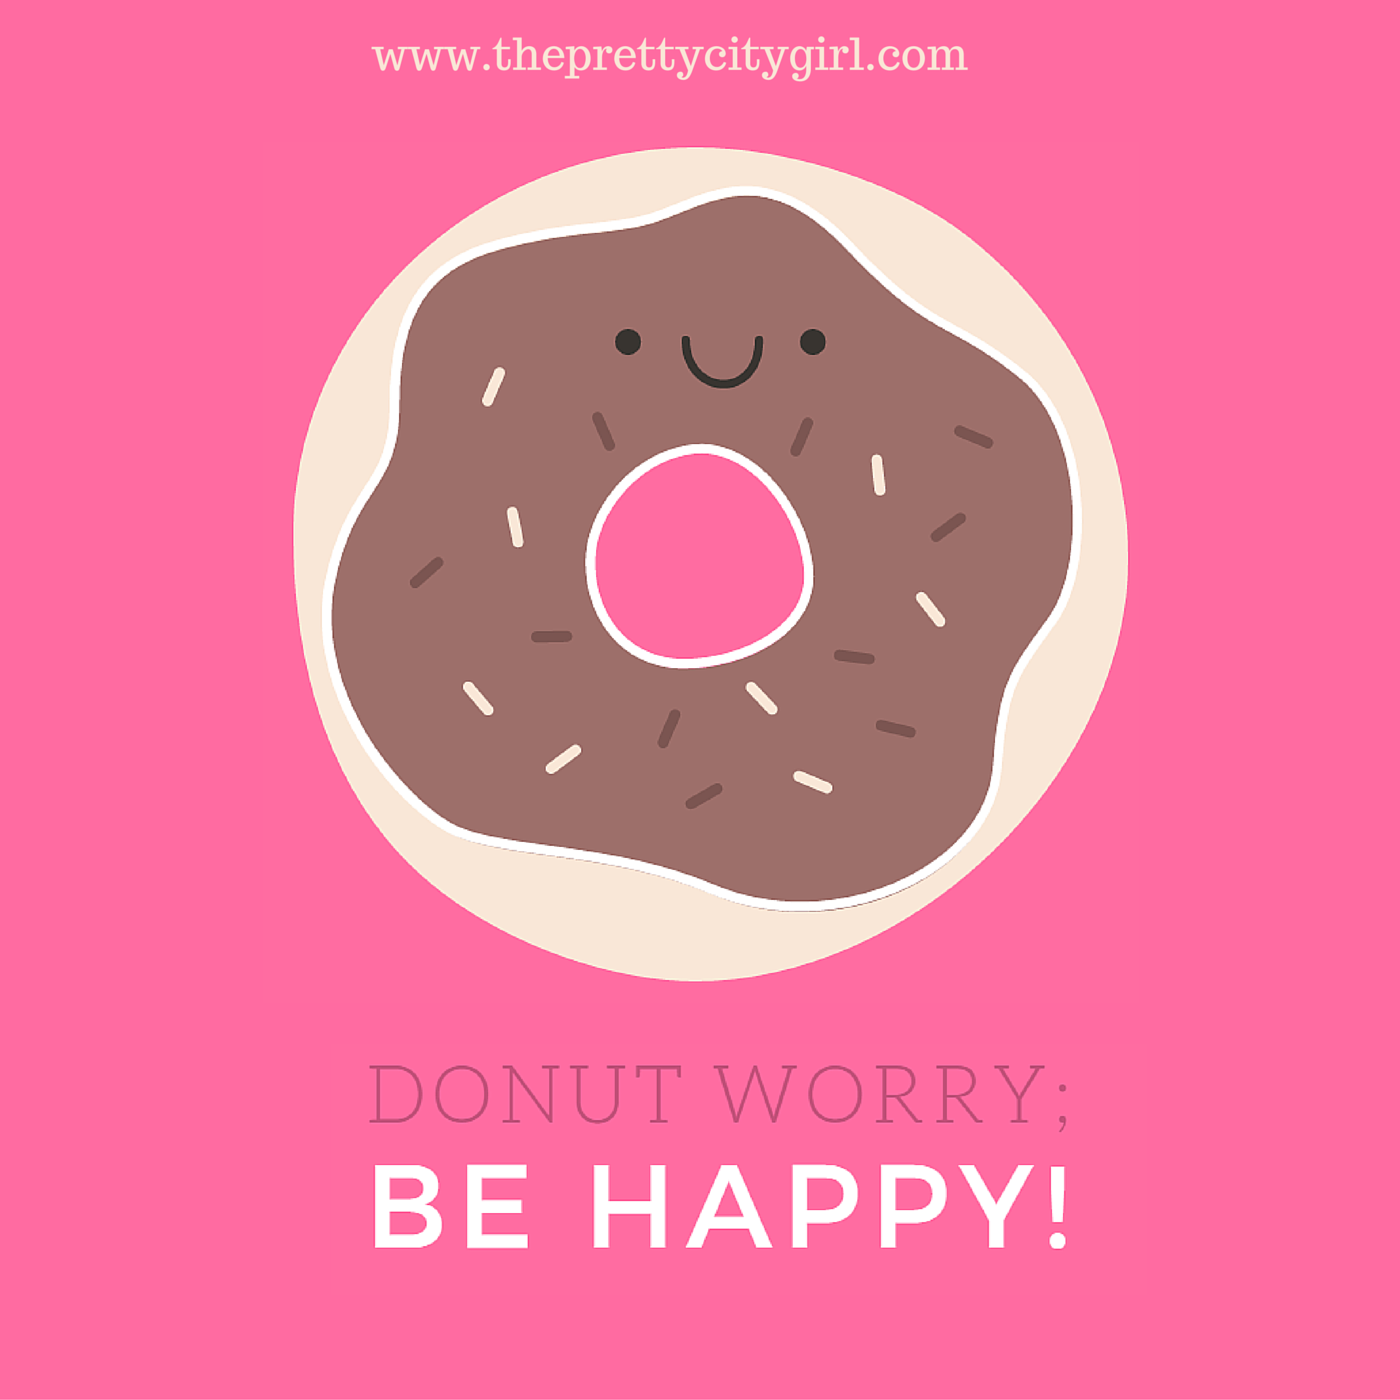 Thats Why Im Uploading This Super Cute Donut That Advises You To Not Worry And Be Happy